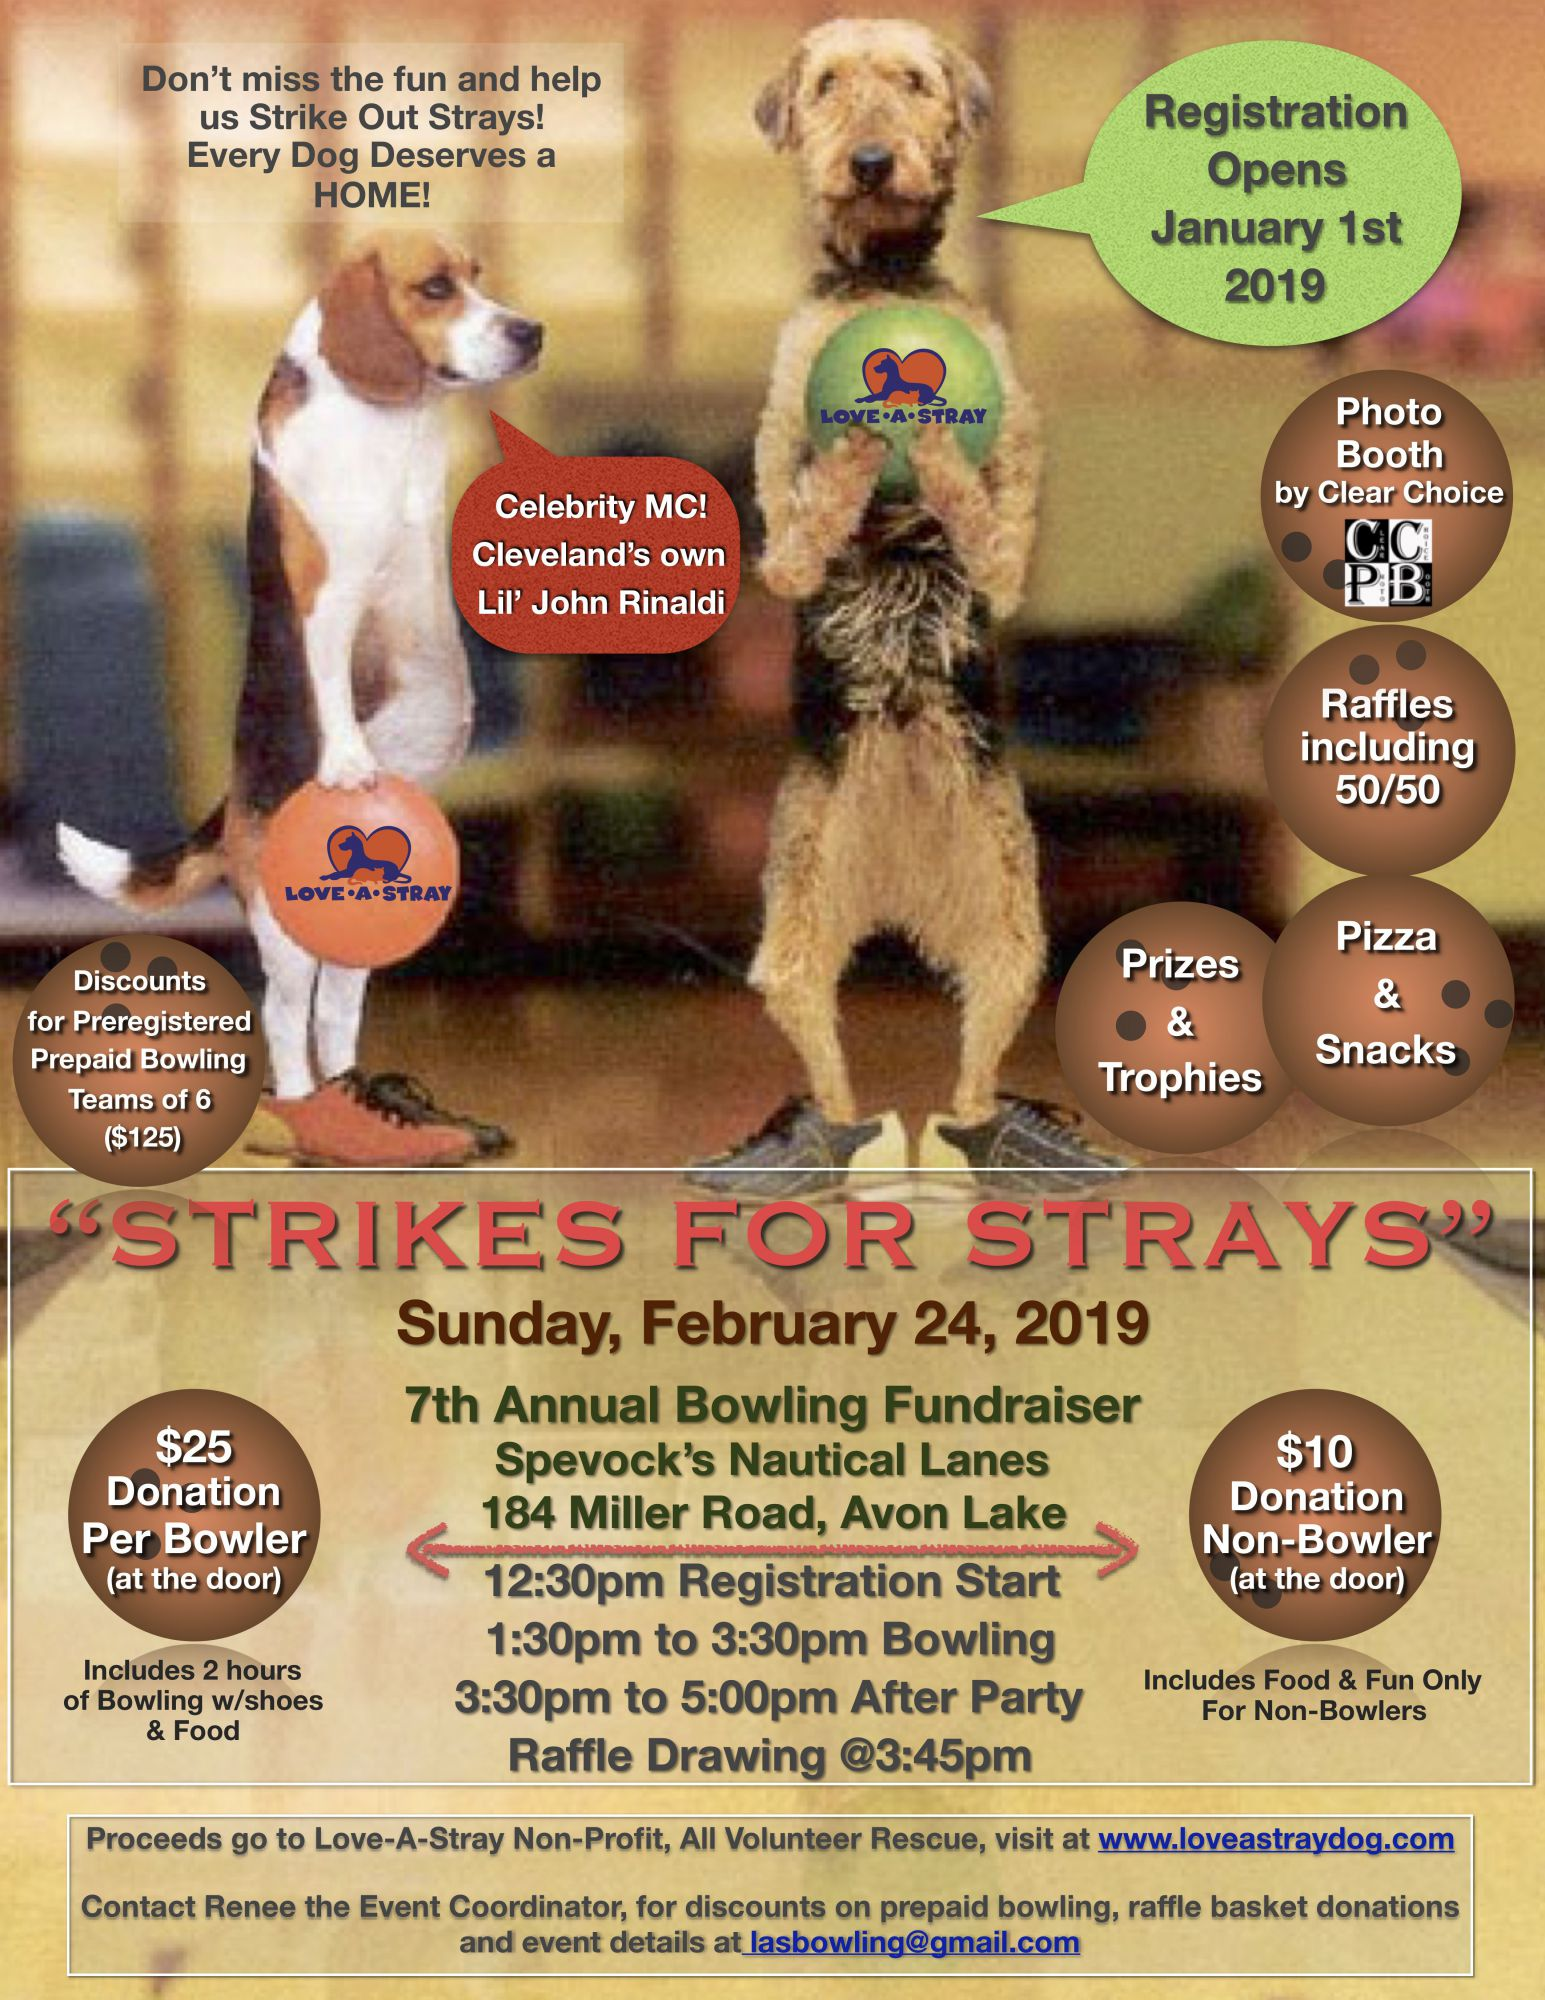 2019 Strikes for Strays